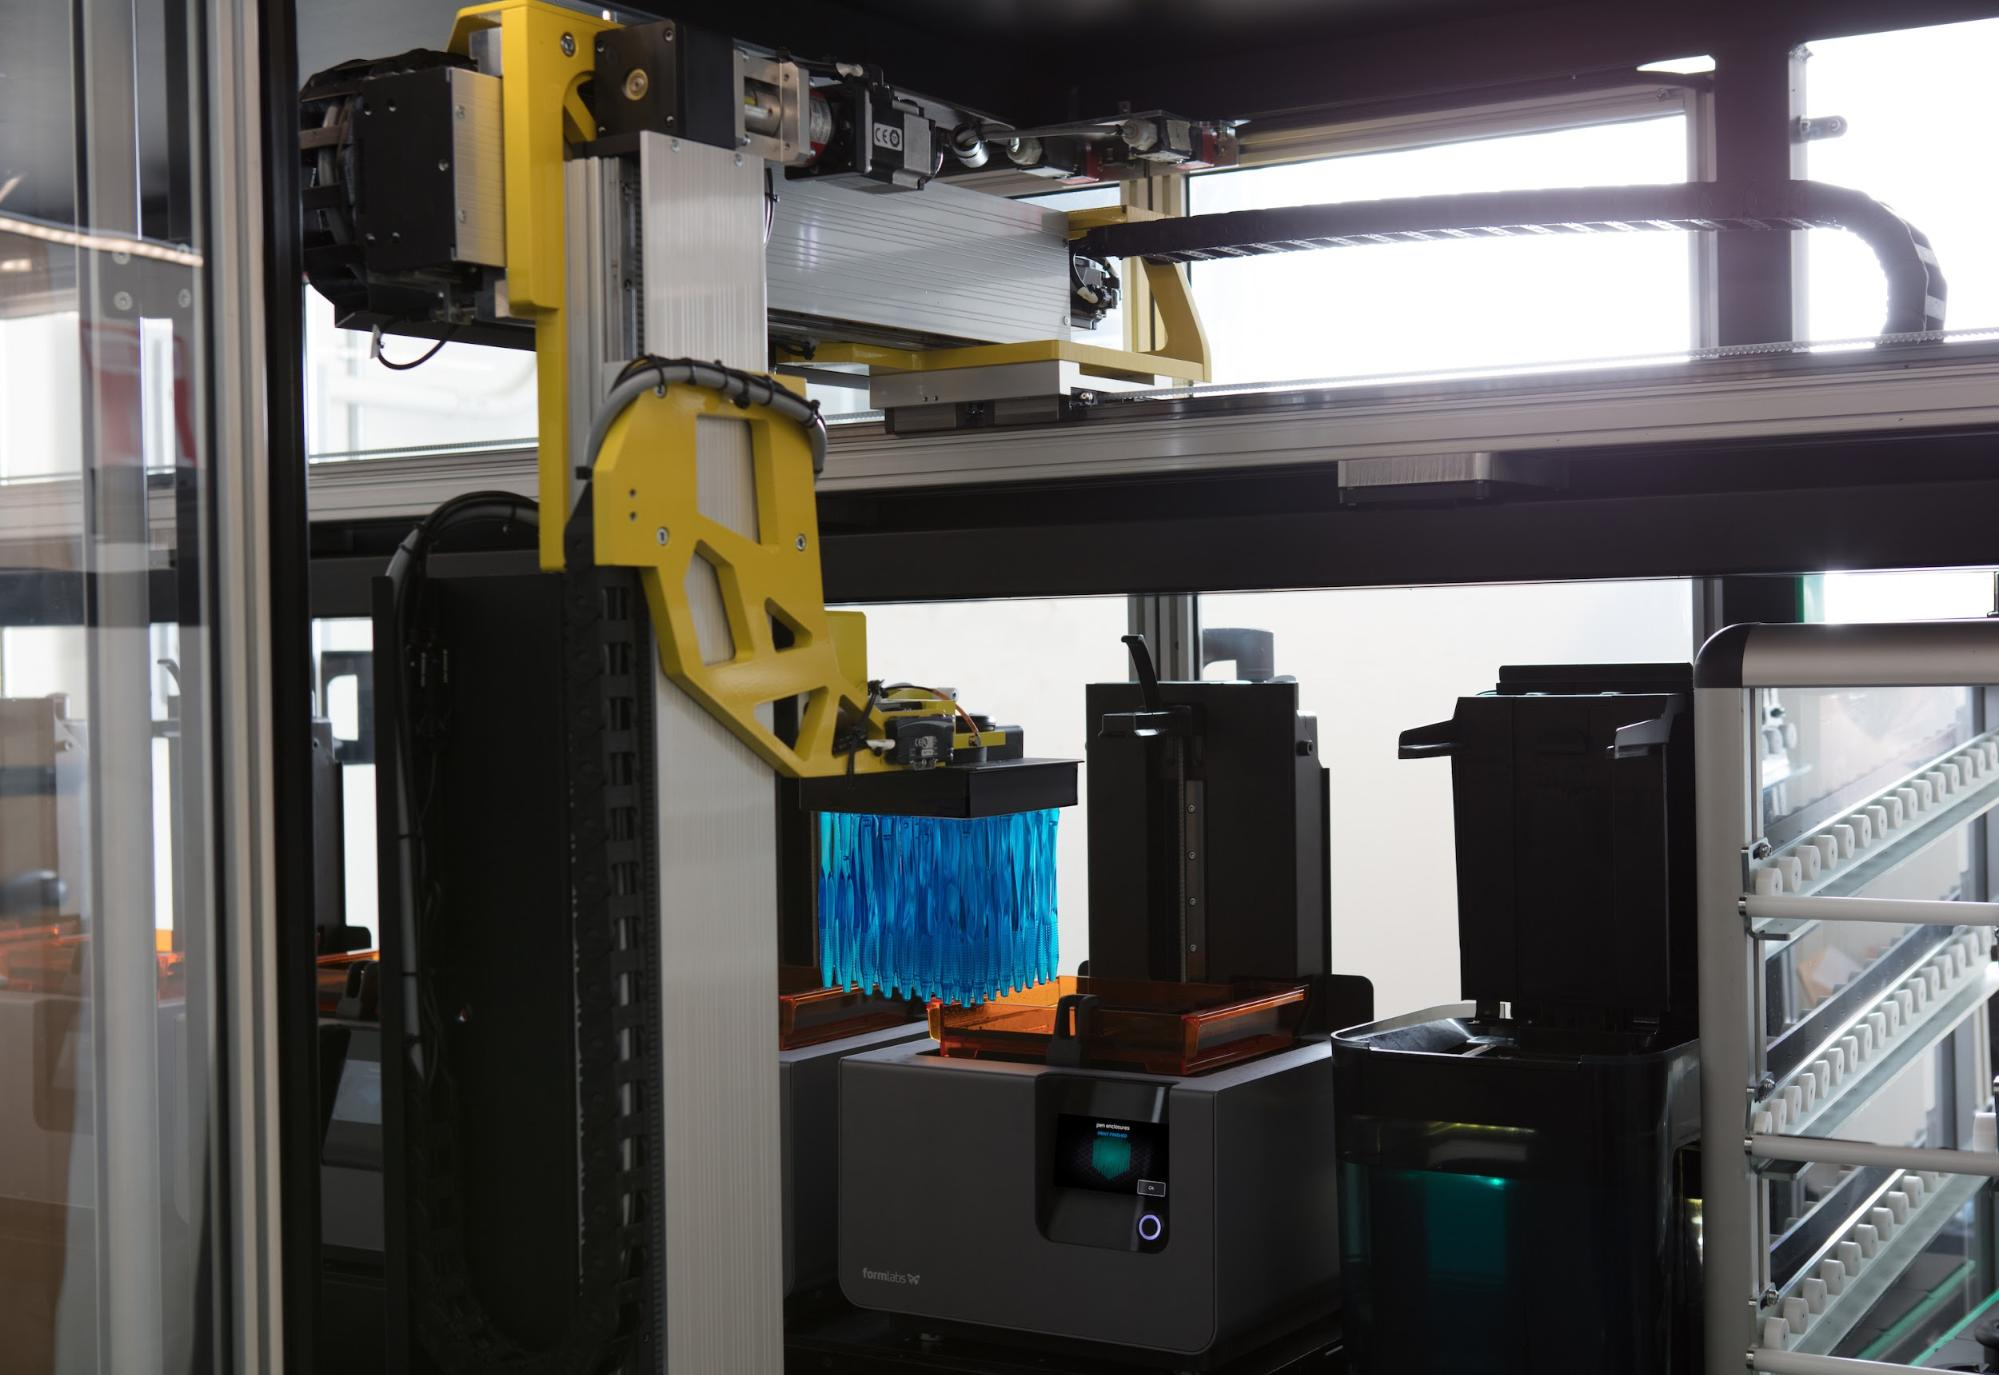 [Form Cell](/3d-printers/form-cell/), a modular production cell developed by Formlabs, uses a robotic arm and gantry system to remove finished parts and clean them in a washing station before placing them on a rack for post-processing, saving considerable human labor.